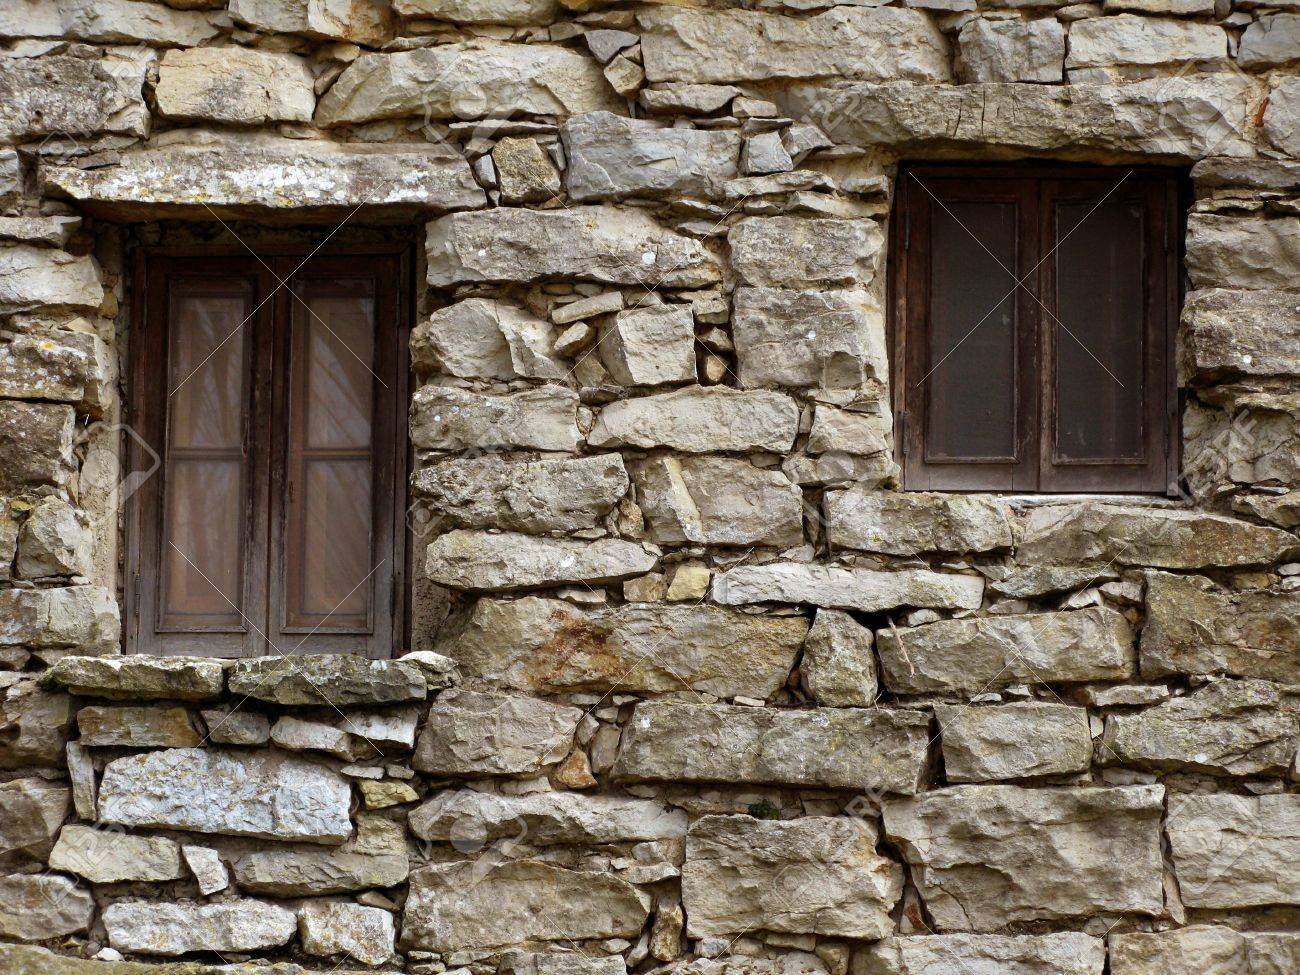 Sensational Abandoned House Stone Wall With Two Windows Stock Photo Picture Largest Home Design Picture Inspirations Pitcheantrous